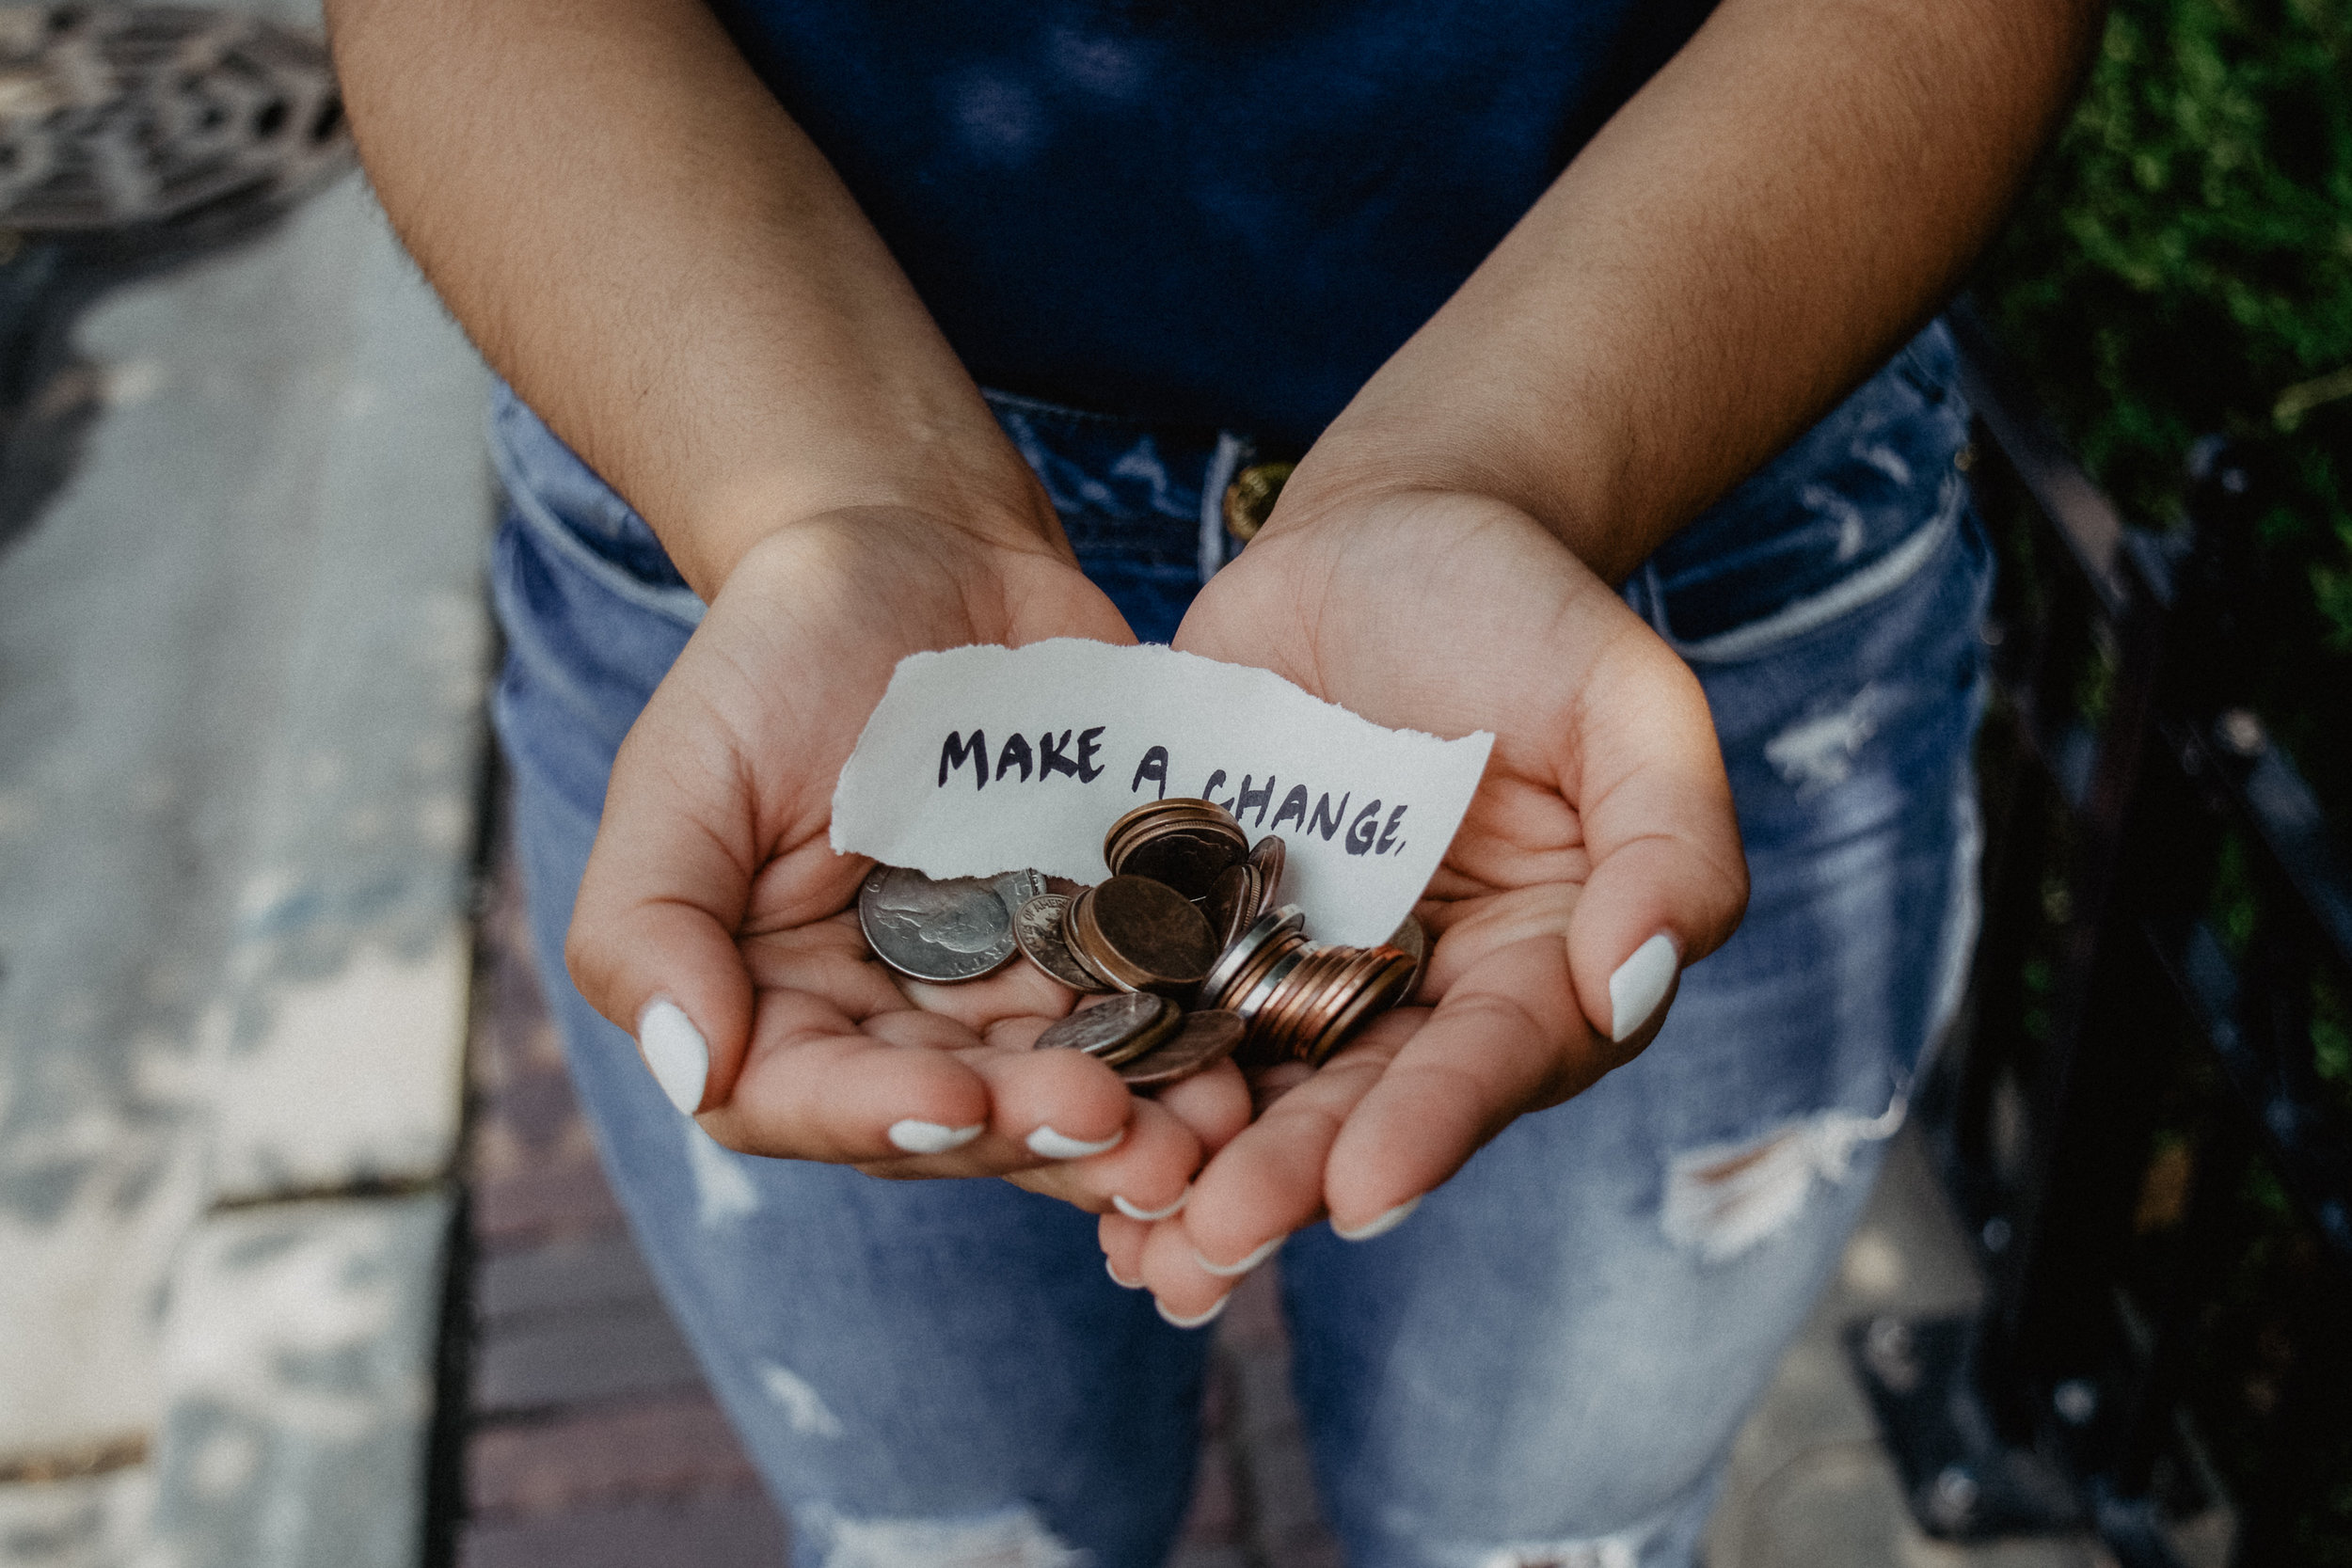 Charity - At the end of every campaign, Drivert gives you $100 to donate to a charity of your choice. Being socially responsible is close to our core and we believe we can make a difference within our community.